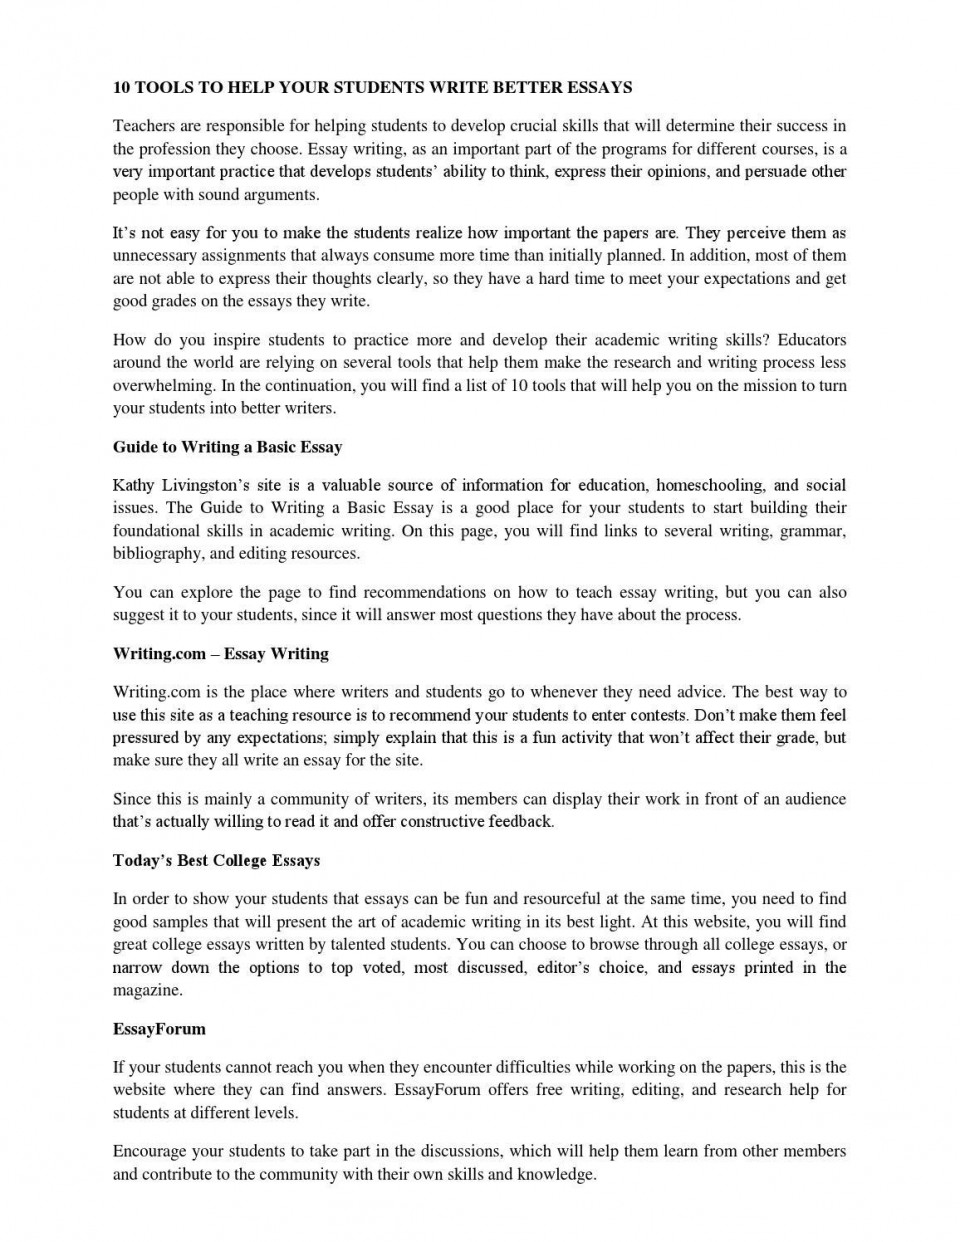 011 Research Paper Essay Writing Websites Reviews For Students Editing Free Page Example Best Software Download Services In India 960